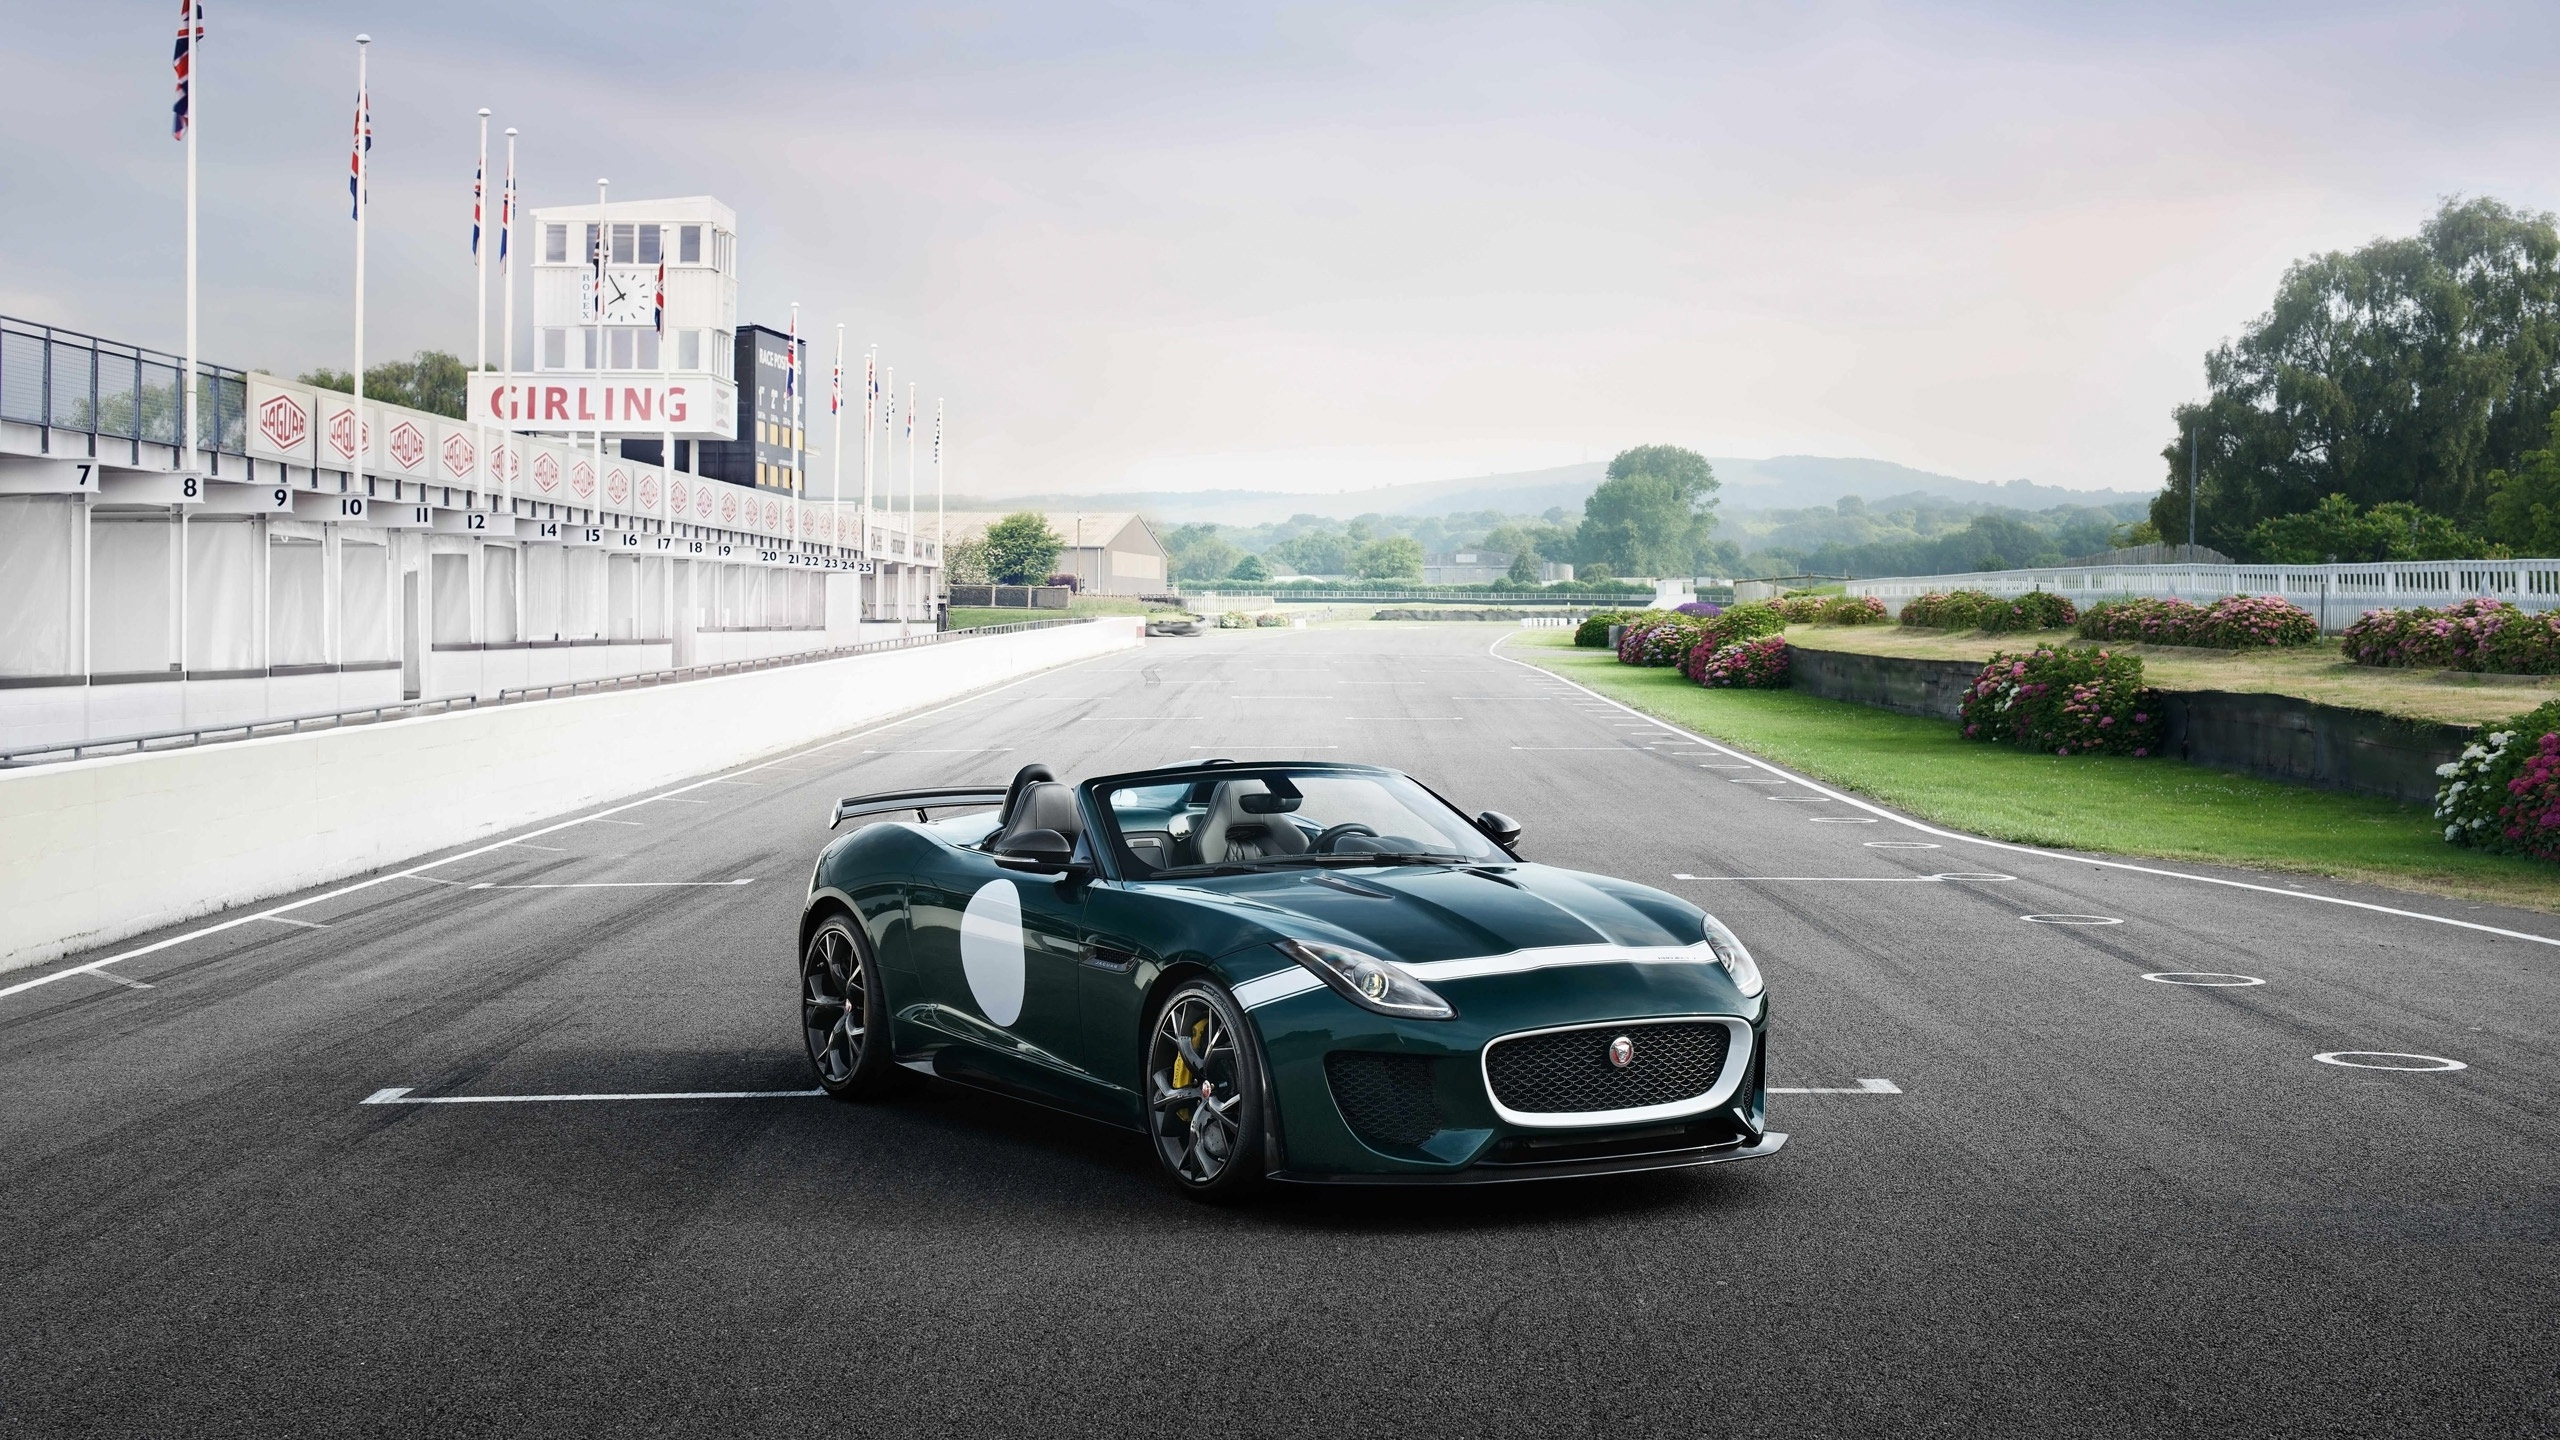 2015 Jaguar F Type Project 7 2 Wallpaper HD Car Wallpapers 2560x1440